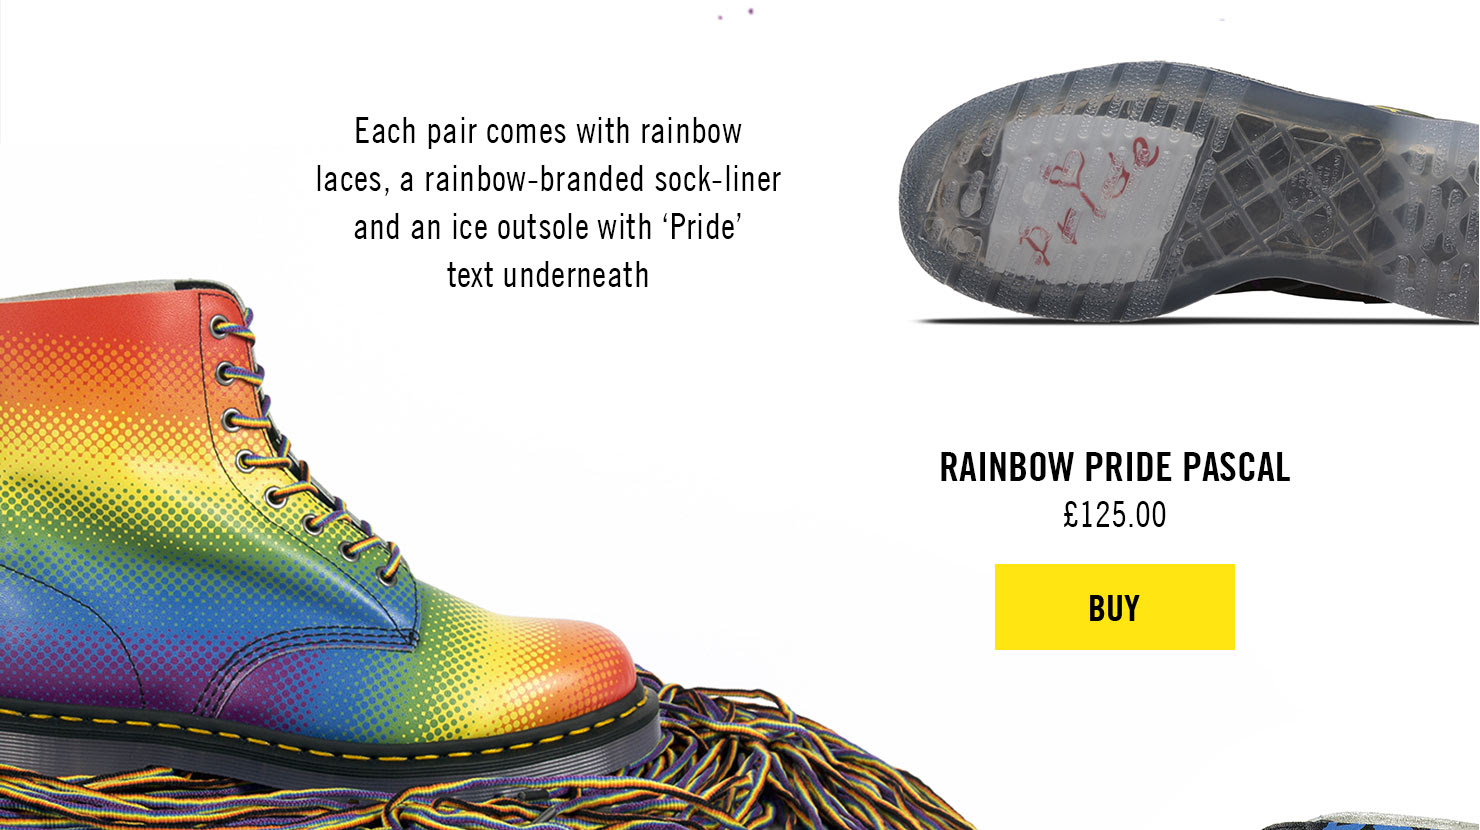 Each pair comes with rainbow laces, a rainbow-branded sock liner and an ice outsole with 'Pride' text underneath - PRIDE PASCAL, £125